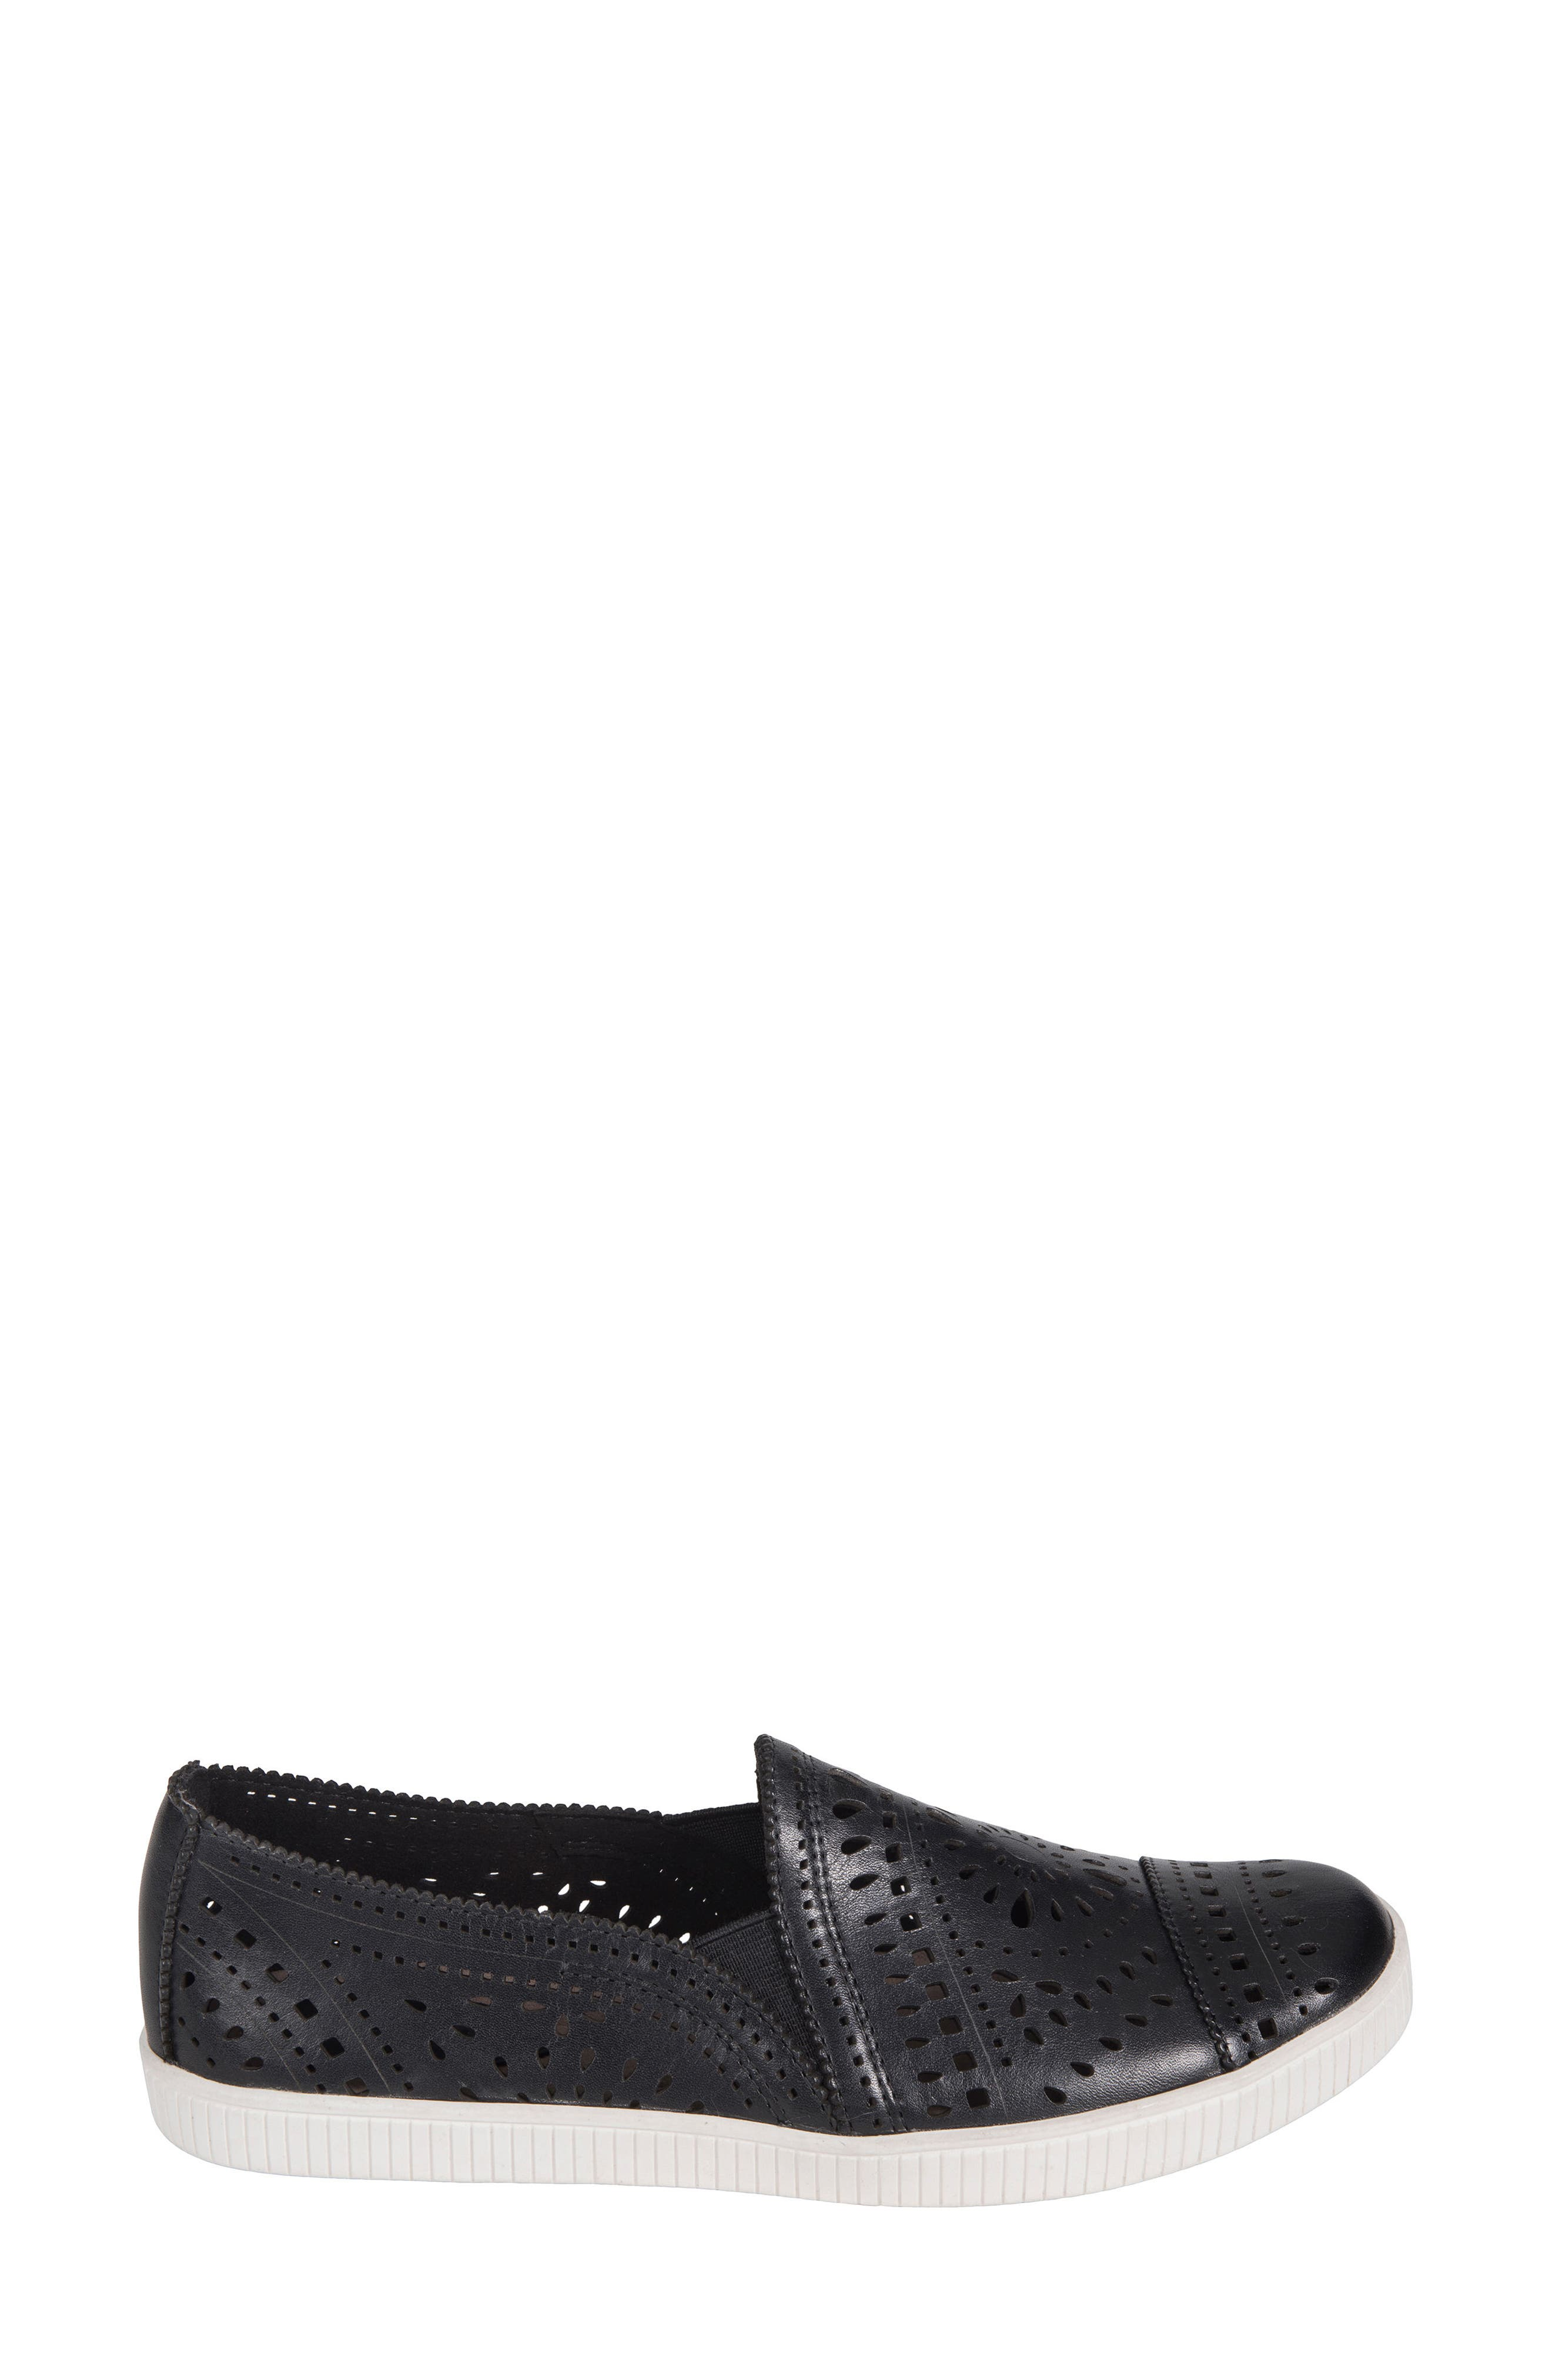 Tayberry Perforated Slip-On Sneaker,                             Alternate thumbnail 9, color,